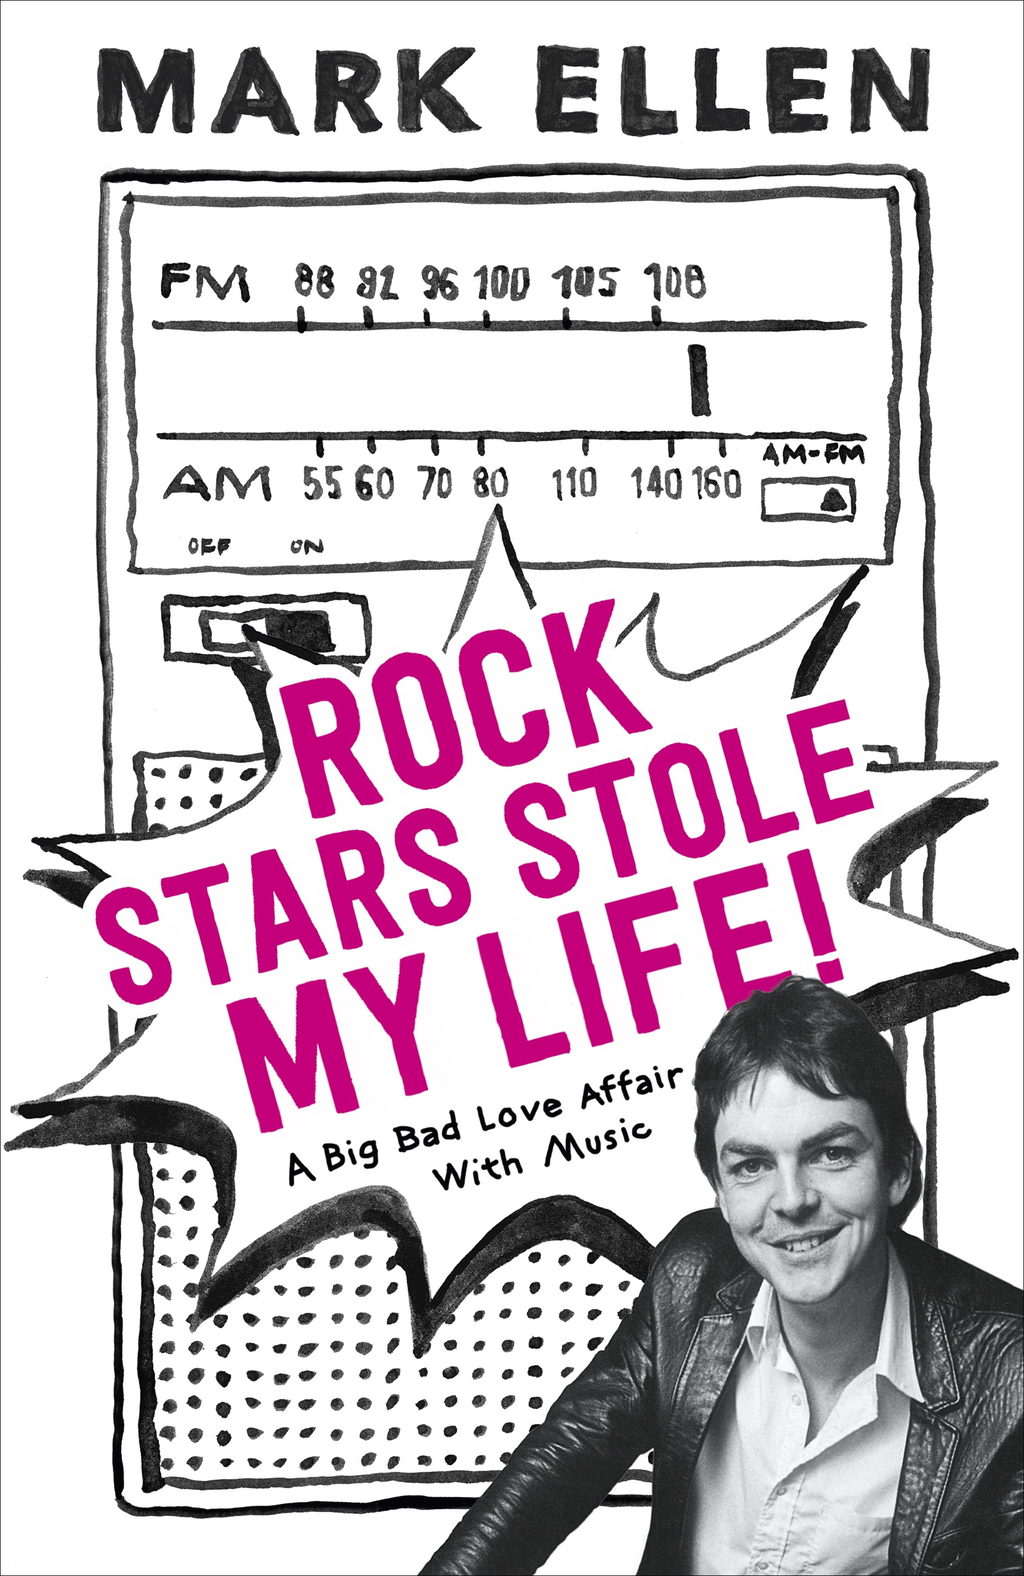 Rock Stars Stole my Life! A Big Bad Love Affair with Music